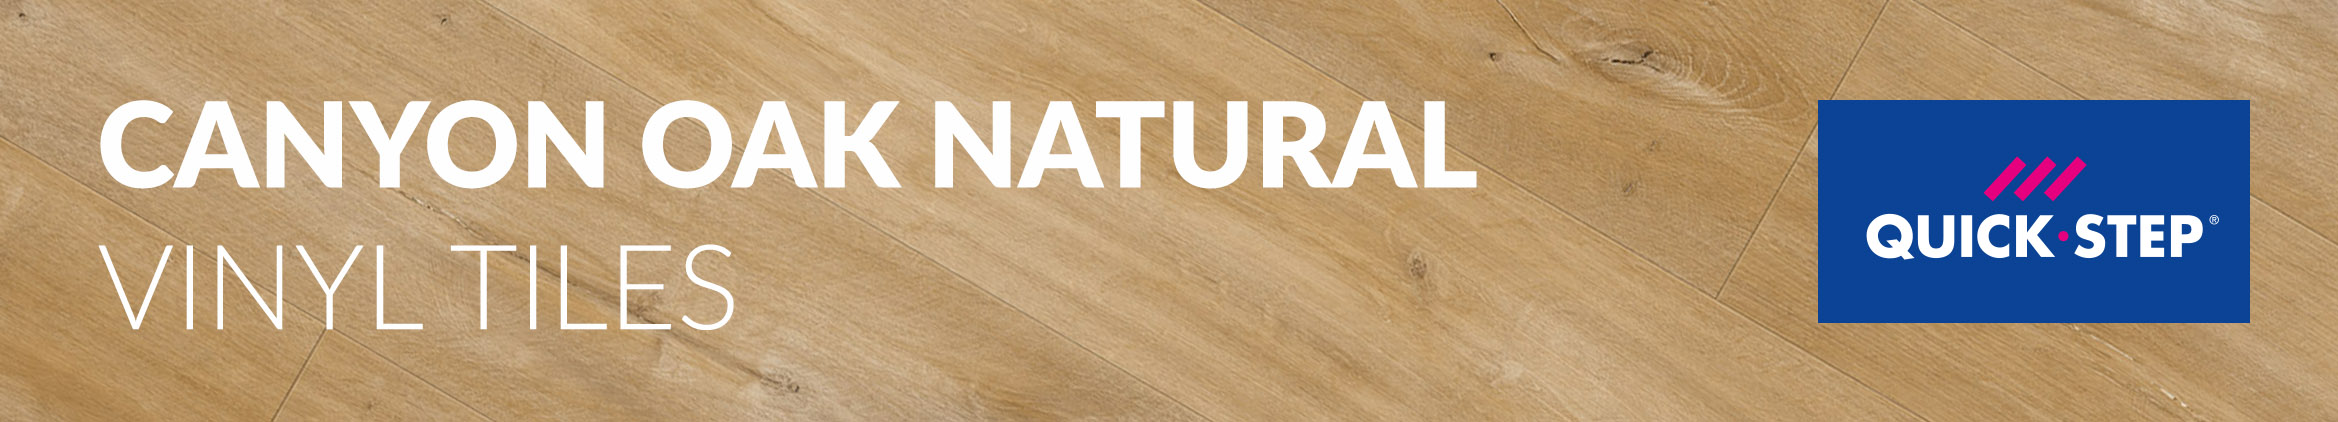 Canyon Oak Natural Quick Step Vinyl